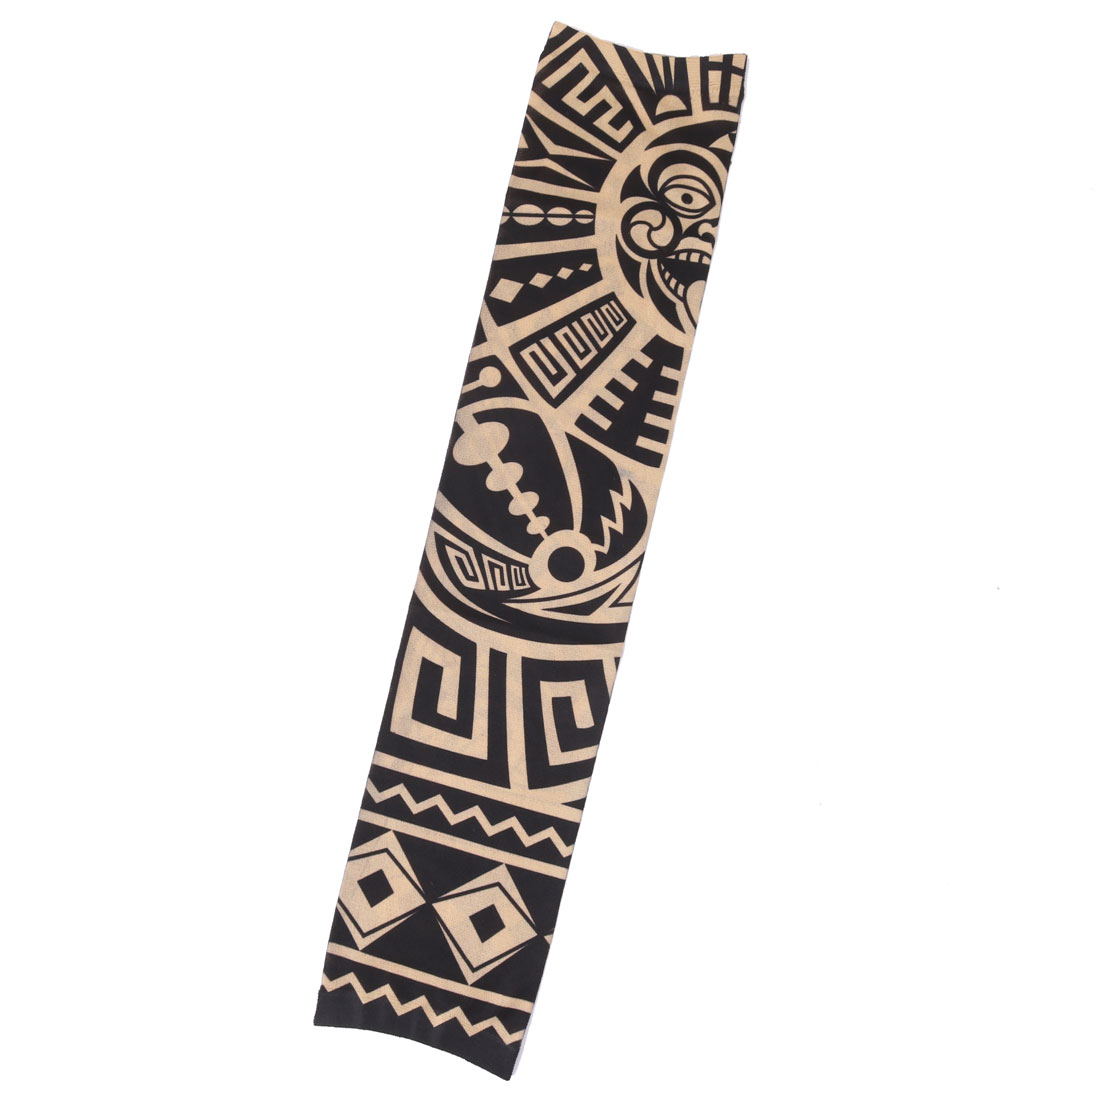 Nylon Geometric Print Riding Cycling Running Stretchy Arm Cover Protector Sleeve Oversleeve